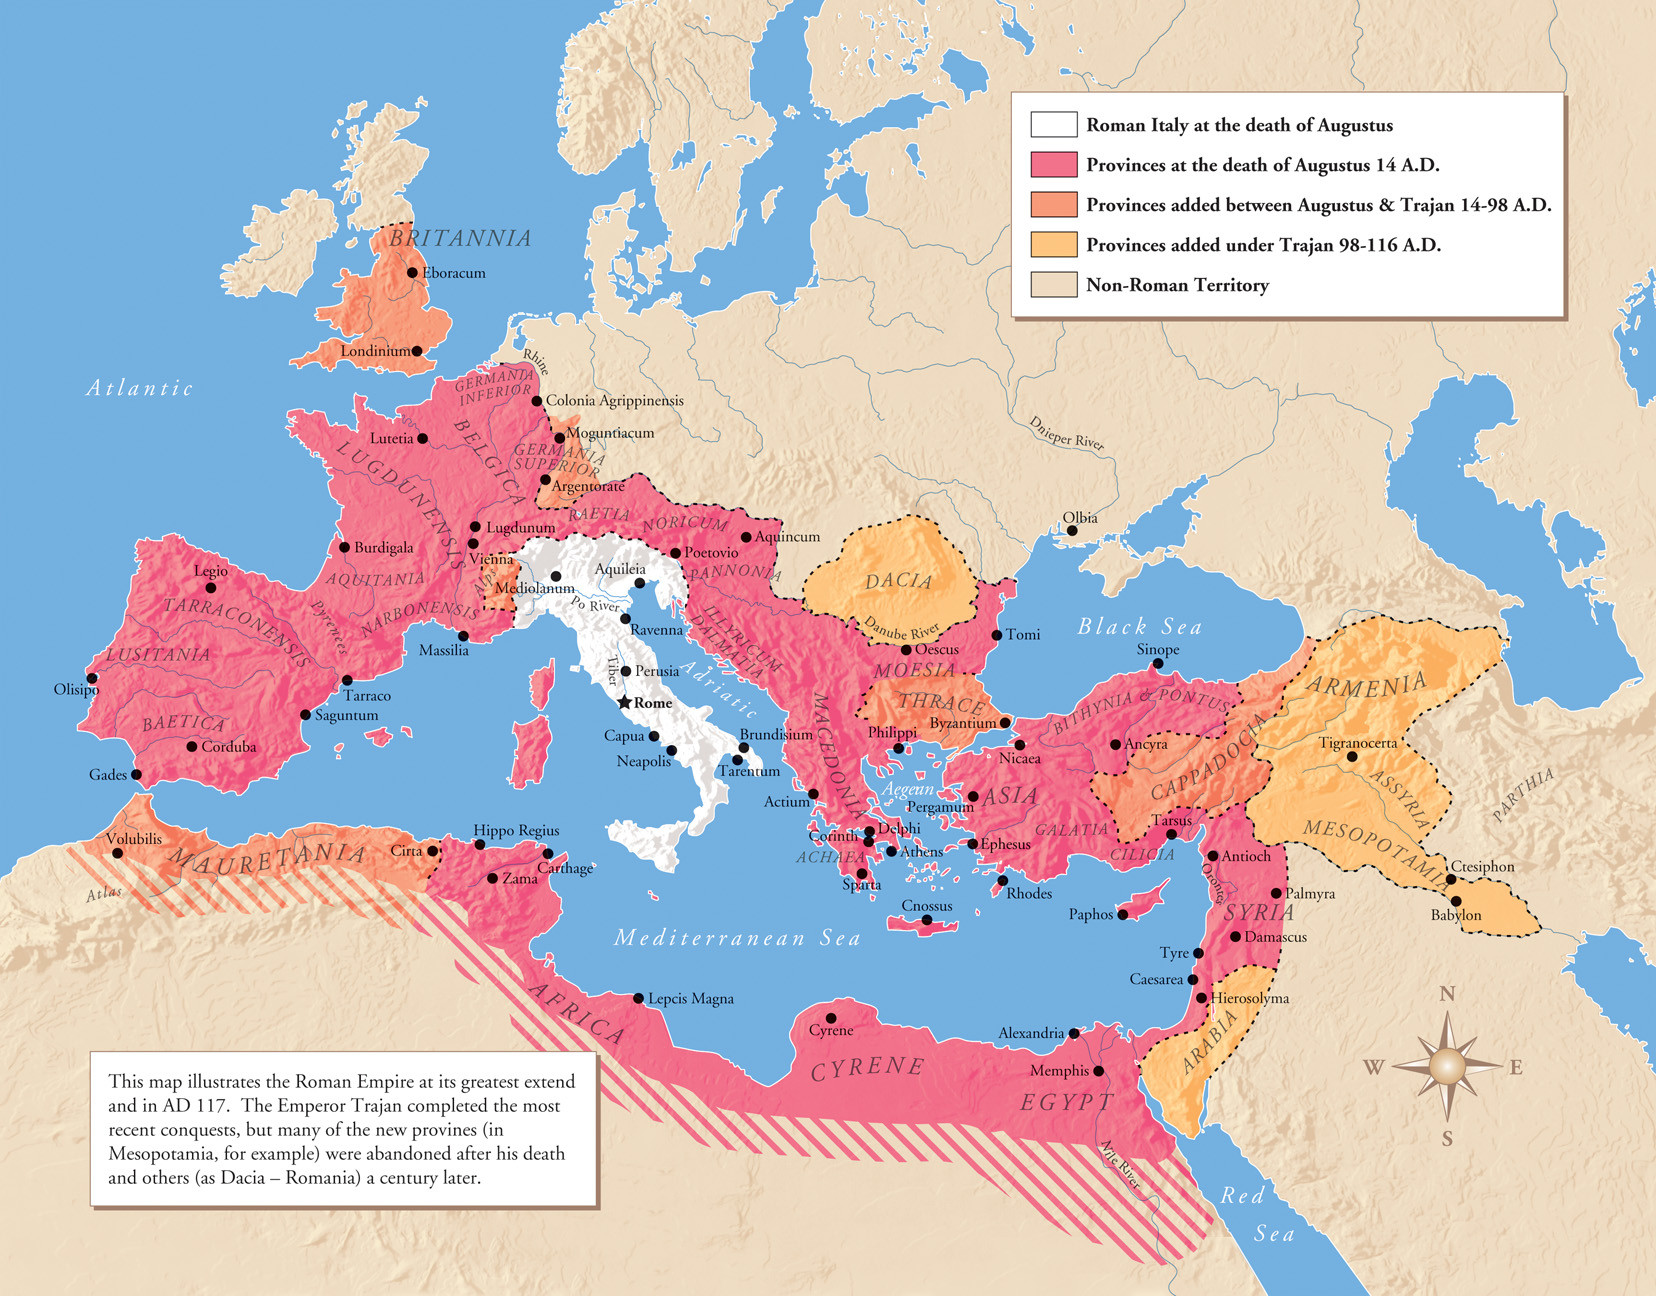 roman empire to 117 ad map Roman Empire Map At Its Height Over Time Istanbul Clues roman empire to 117 ad map